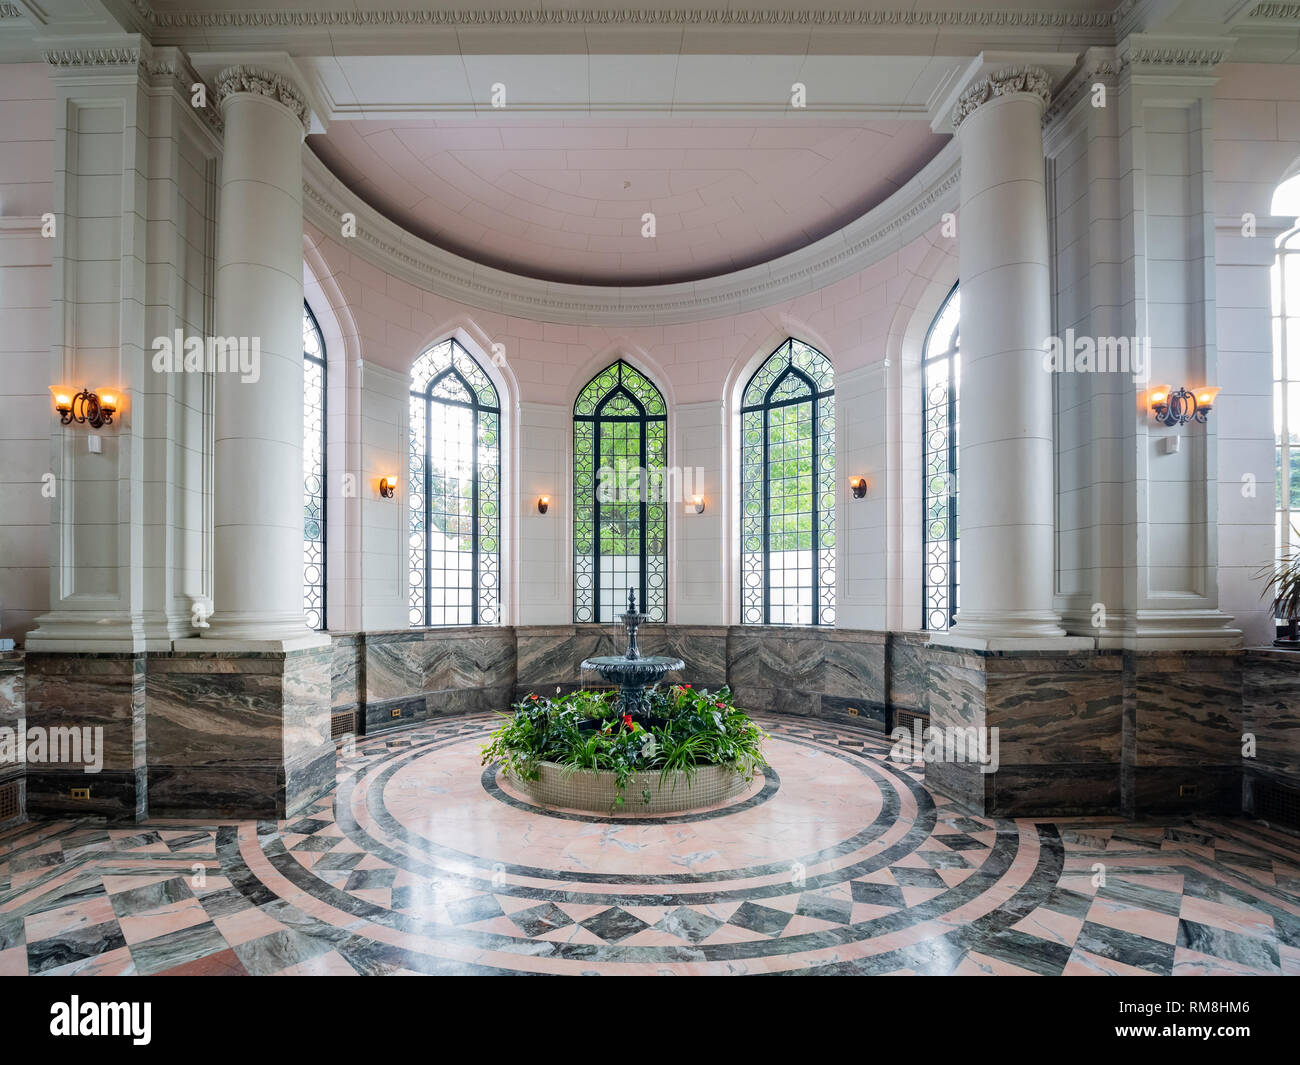 Toronto, SEP 29: Interior view of the famous Casa Loma on